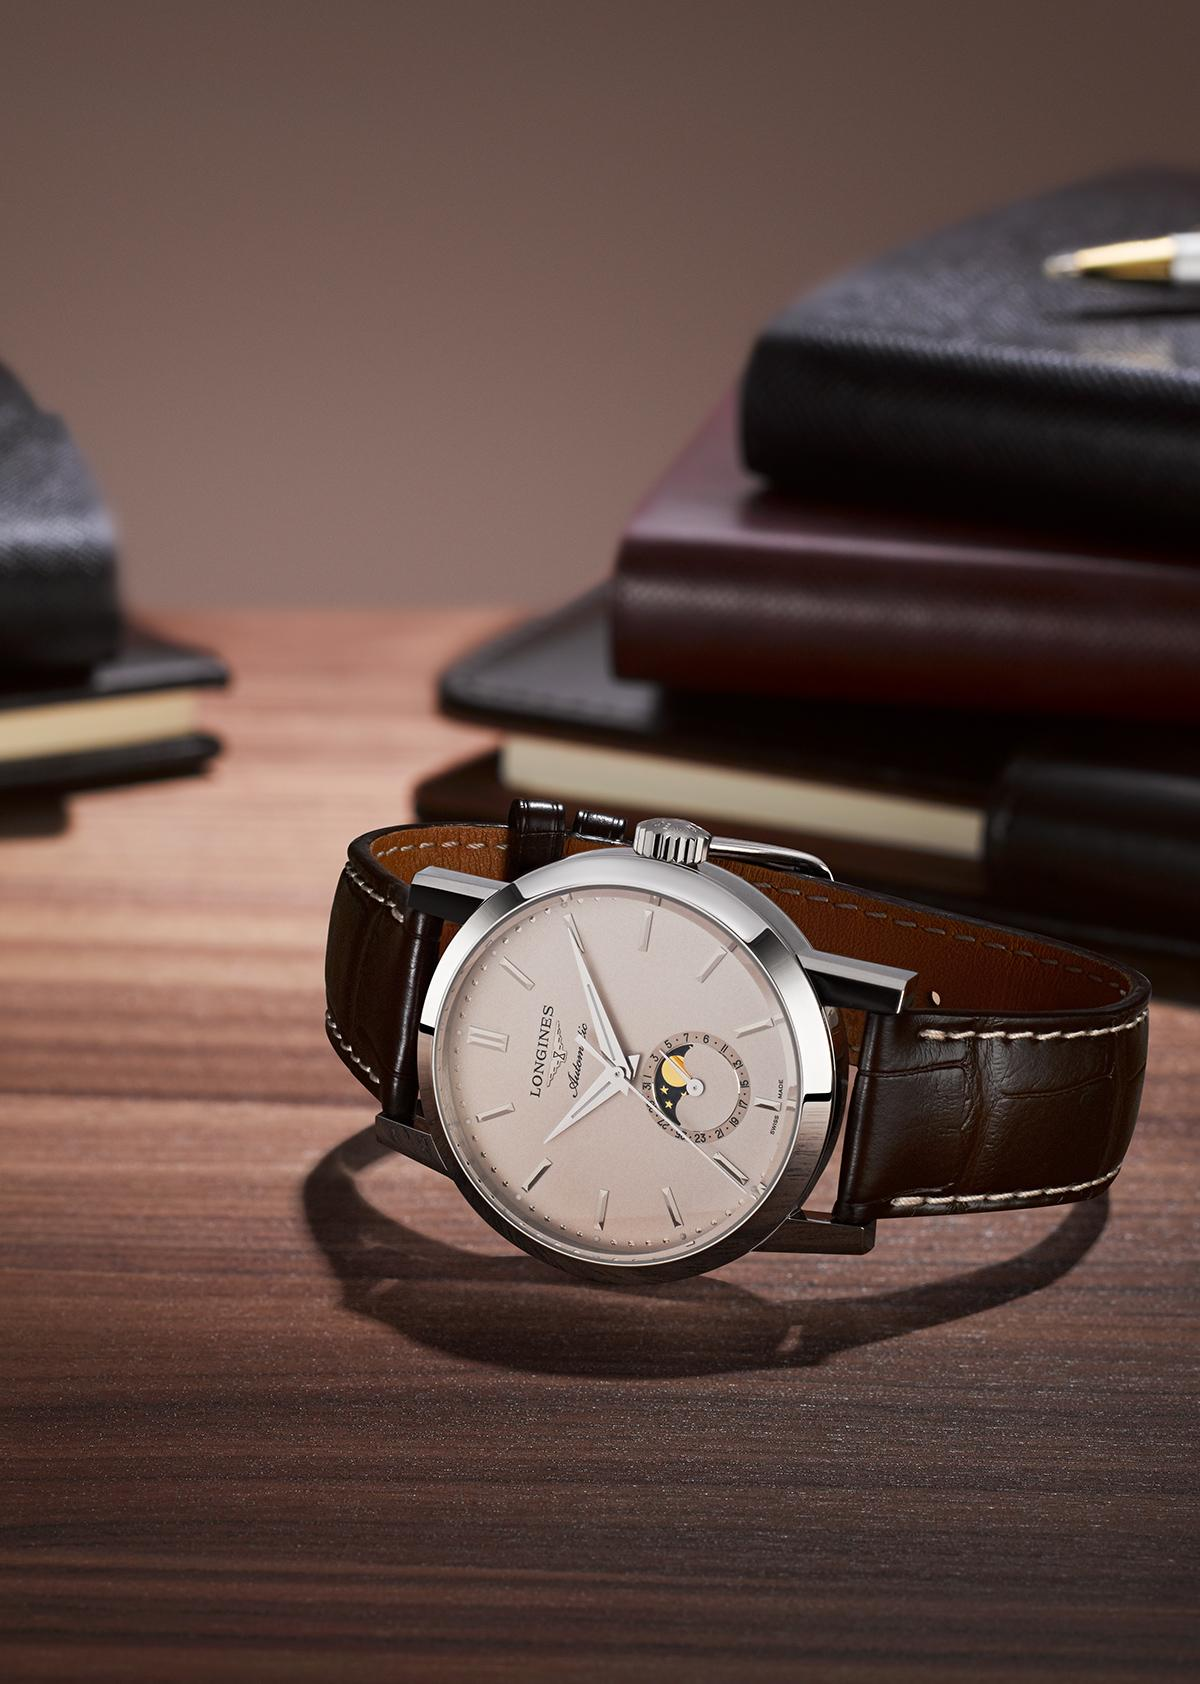 A New Chapter in the Longines 1832 Iconic Tale. The Longines 1832 Moonphase Men's Brown Leather Strap Watch with a unique moon-phase feature on its side.